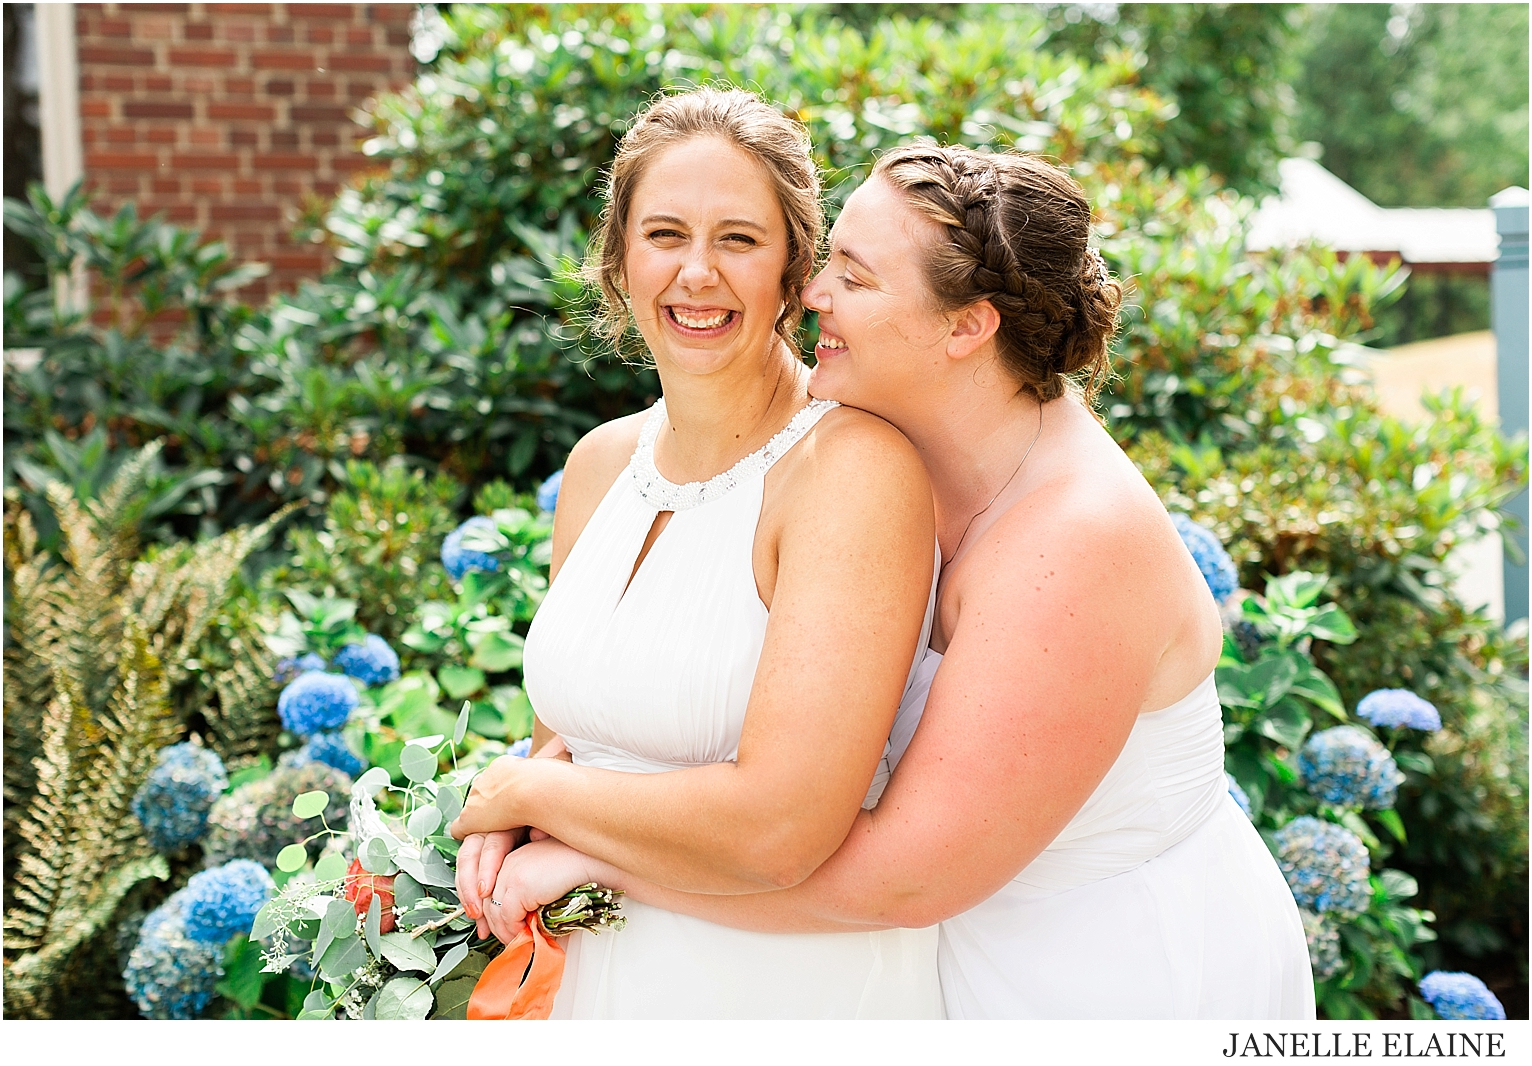 liz and christina lanning-first look and portraits-luther burbank park-janelle elaine photography-187.jpg